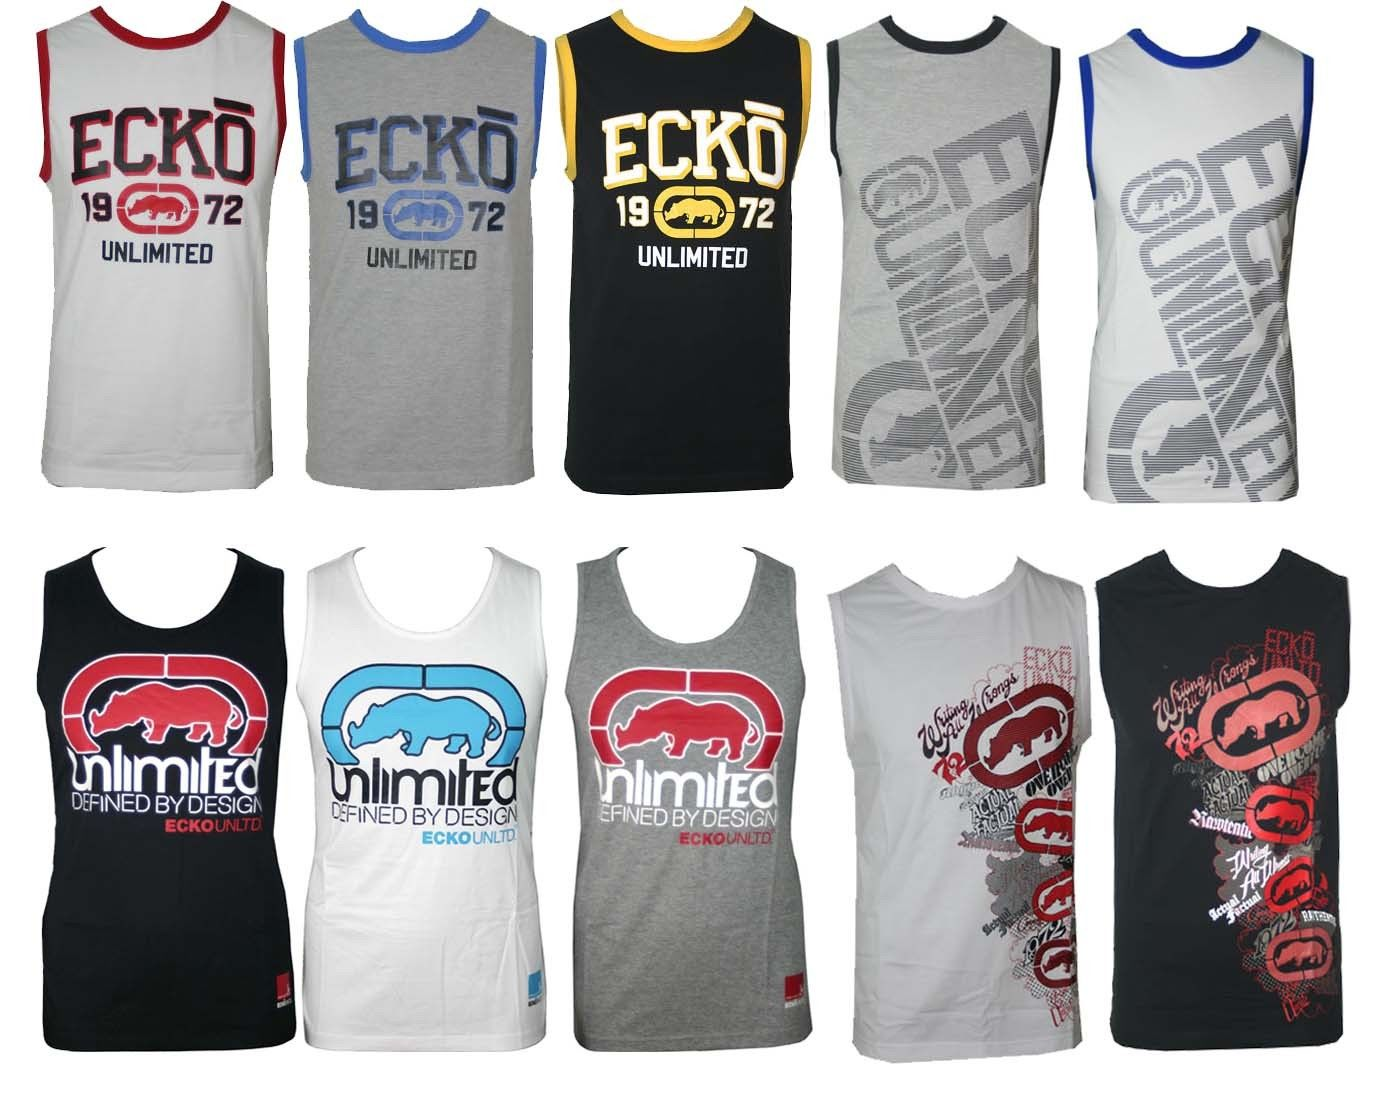 NEW MENS ECKO VEST GREY WHITE BLACK CREW NECK SIZE S M L XL XXL